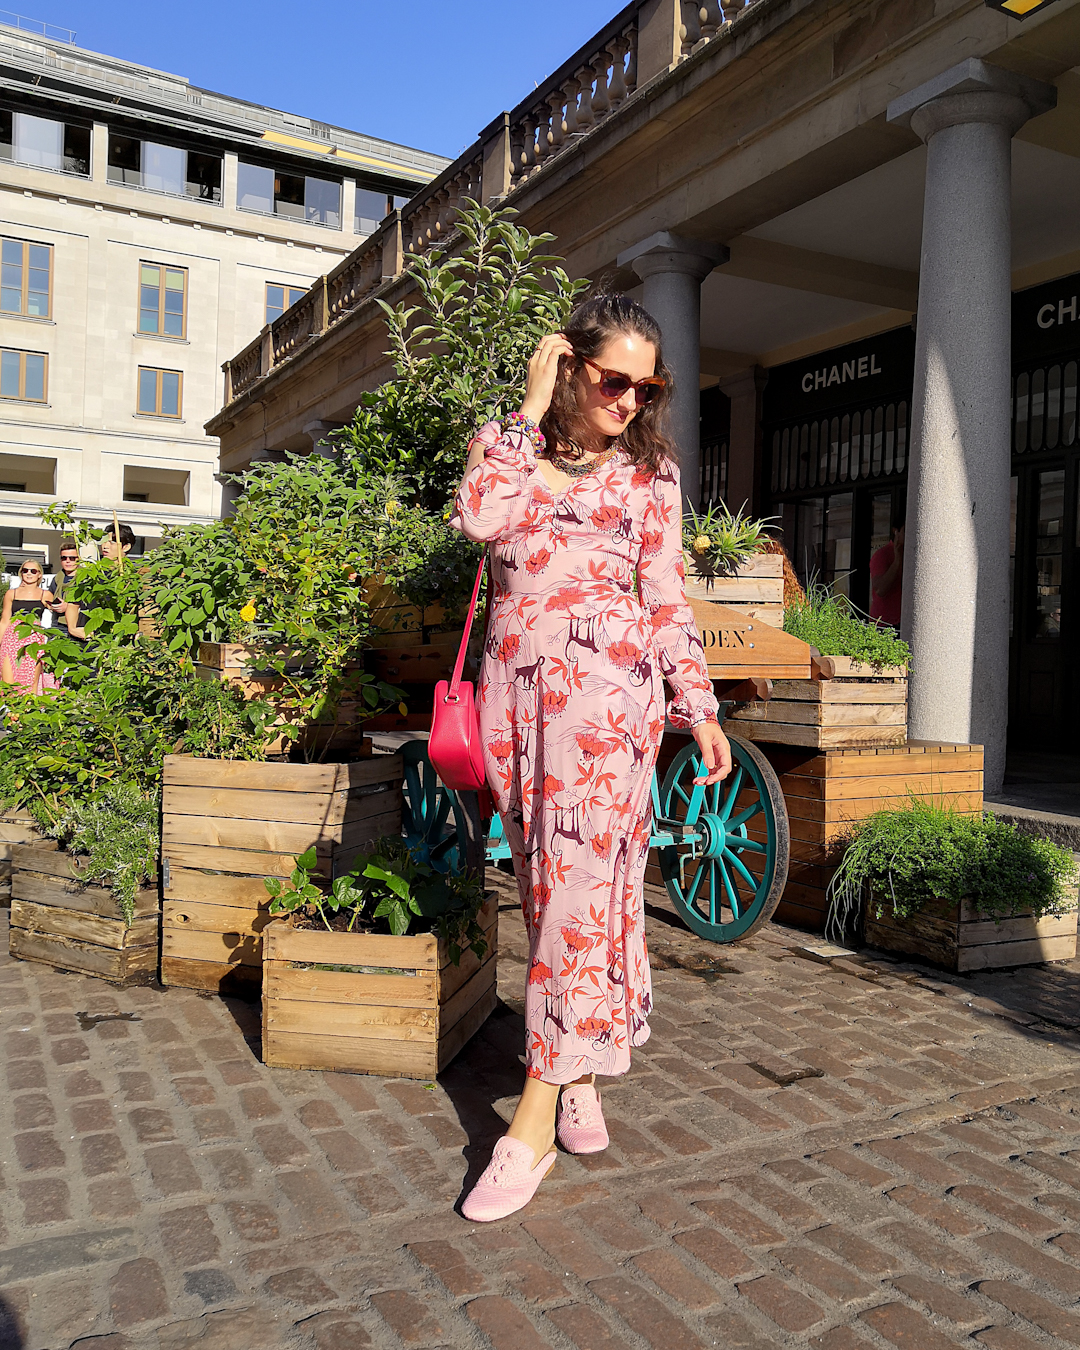 Katie wears a pink maxi dress with fuschia flowers and brown monkeys printed on. She's also wearing oversized amber coloured cat eye sunglasses, a layered multicoloured pink bugle bead necklace and bangles in the traditional Pakistan craft style.